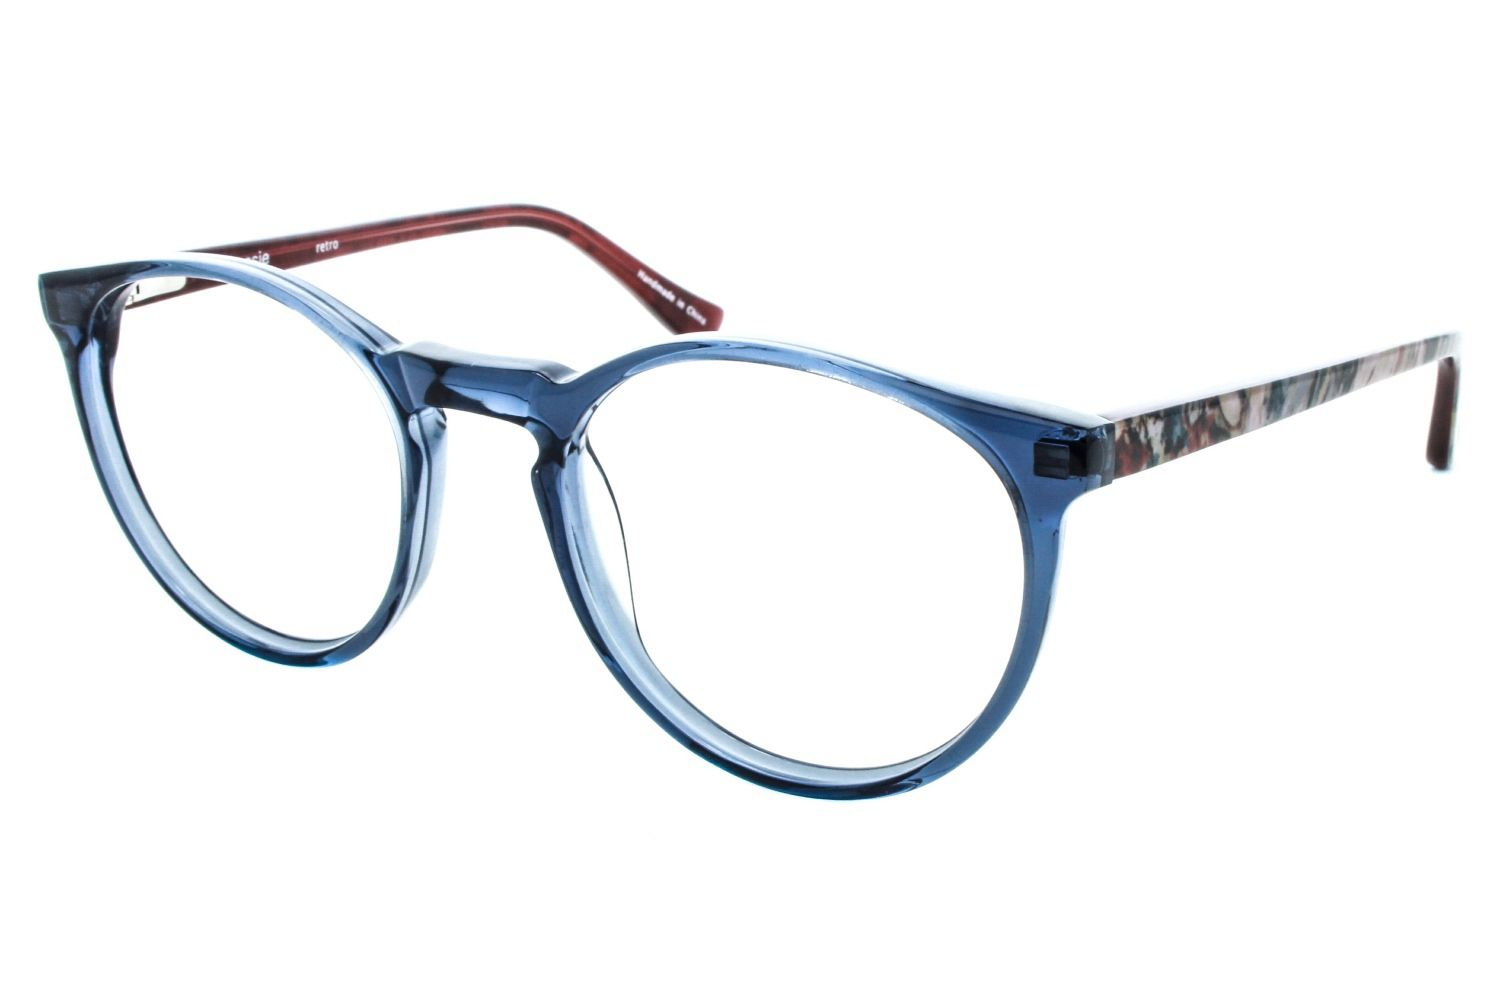 Retro by kensie Eyewear offers international styling and quality ...